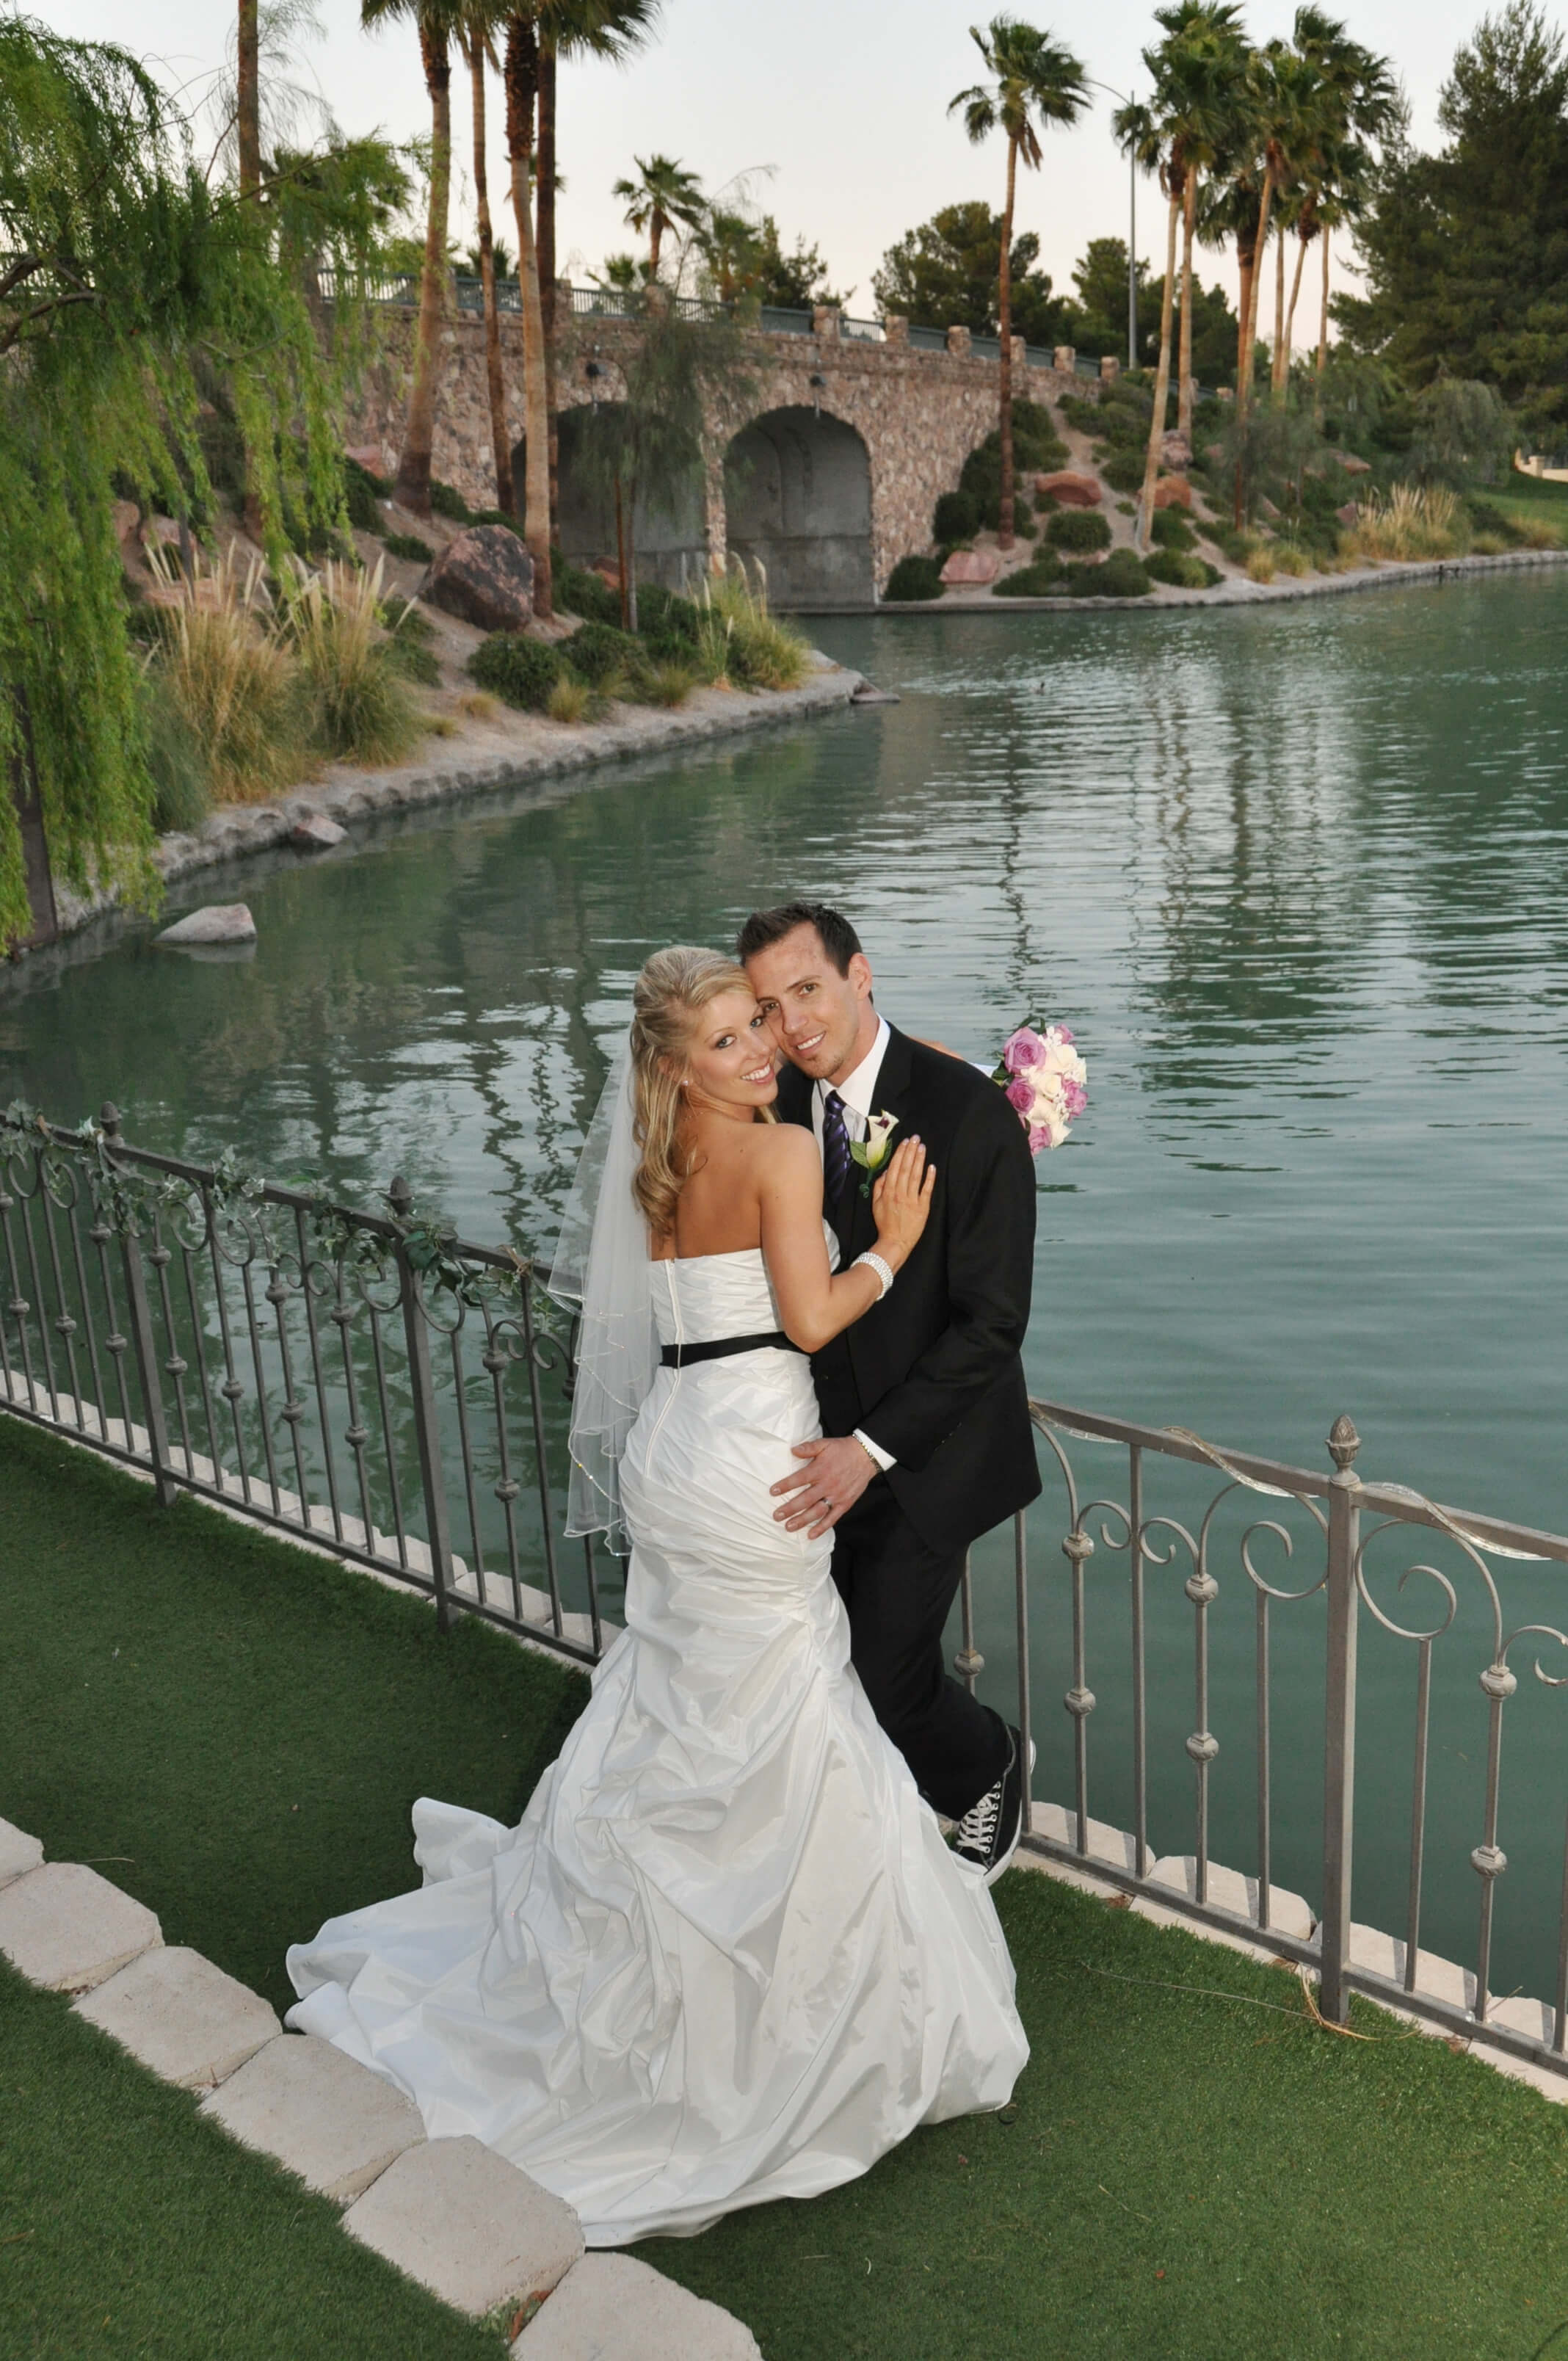 Lakeside Jade All Inclusive Wedding Ceremony Reception Package Up To 30 Guests Included